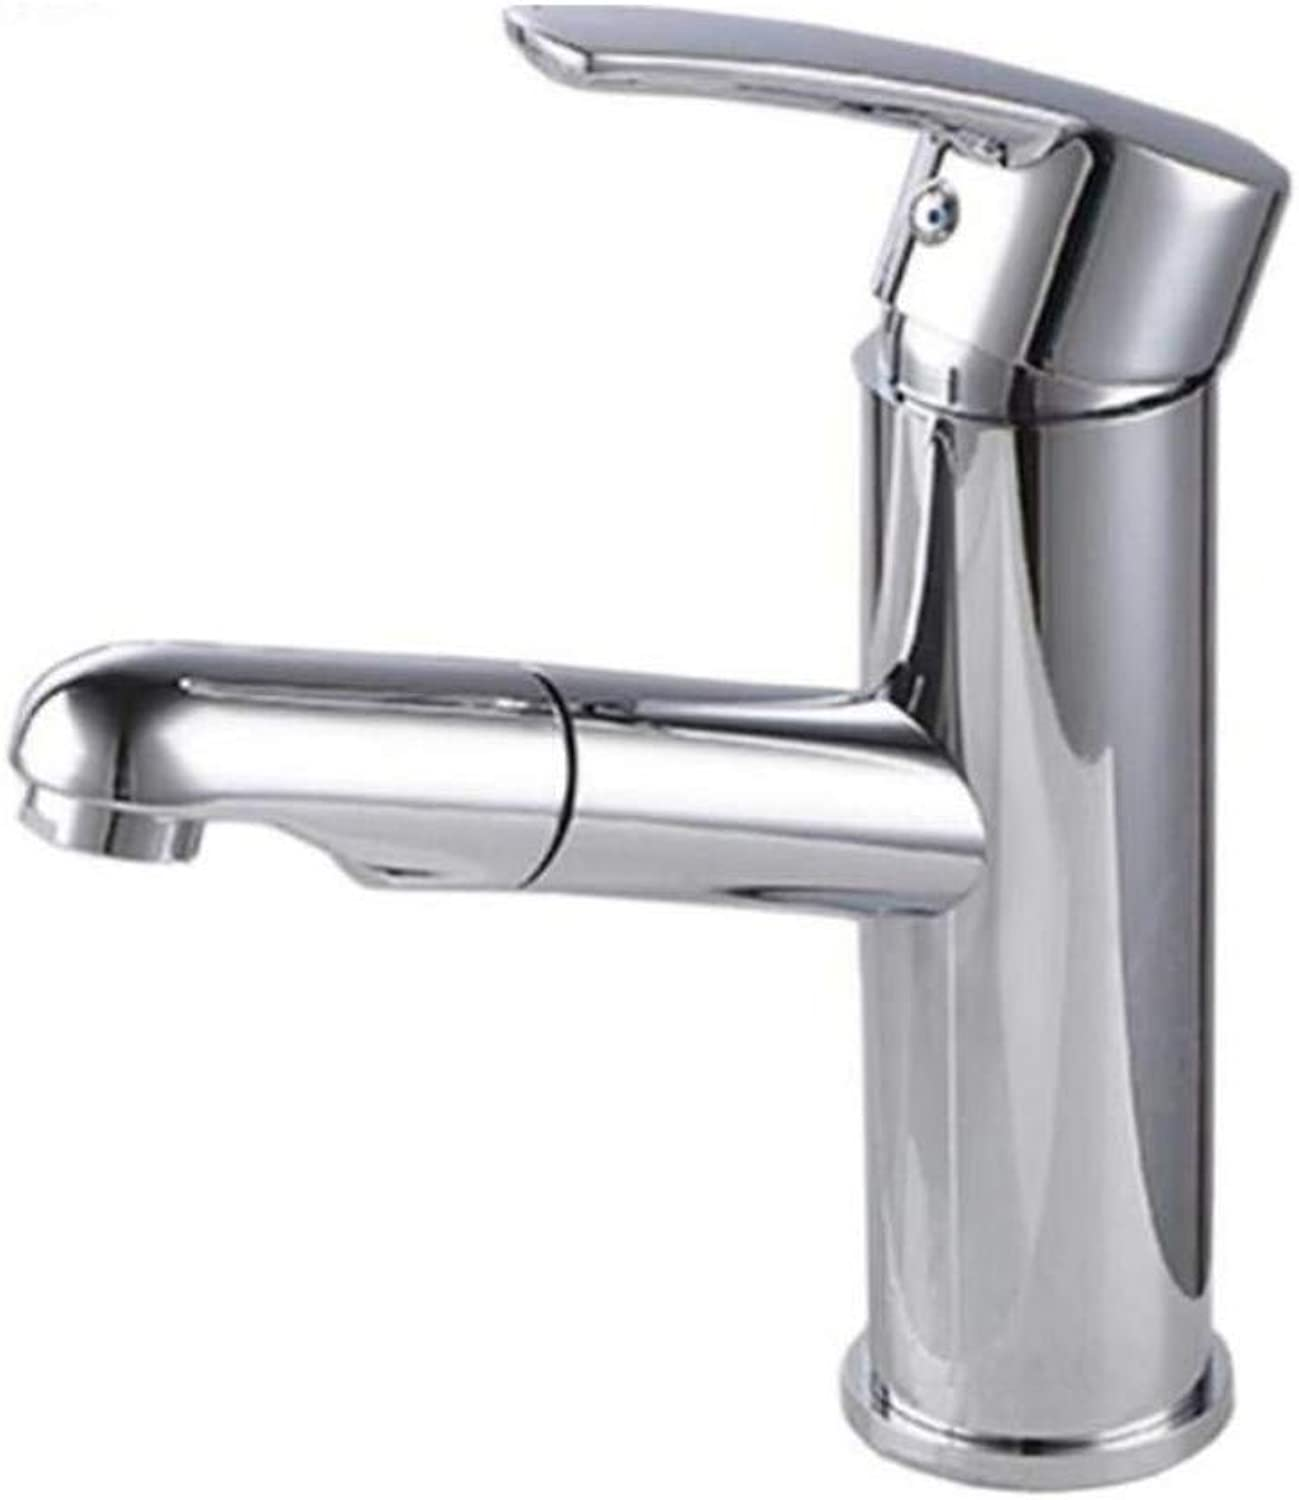 Chrome Kitchen Sink Taptaps Mixer Swivel Faucet Sink Copper Tap Cold and Hot Water Pumping Type Face Basin Tap